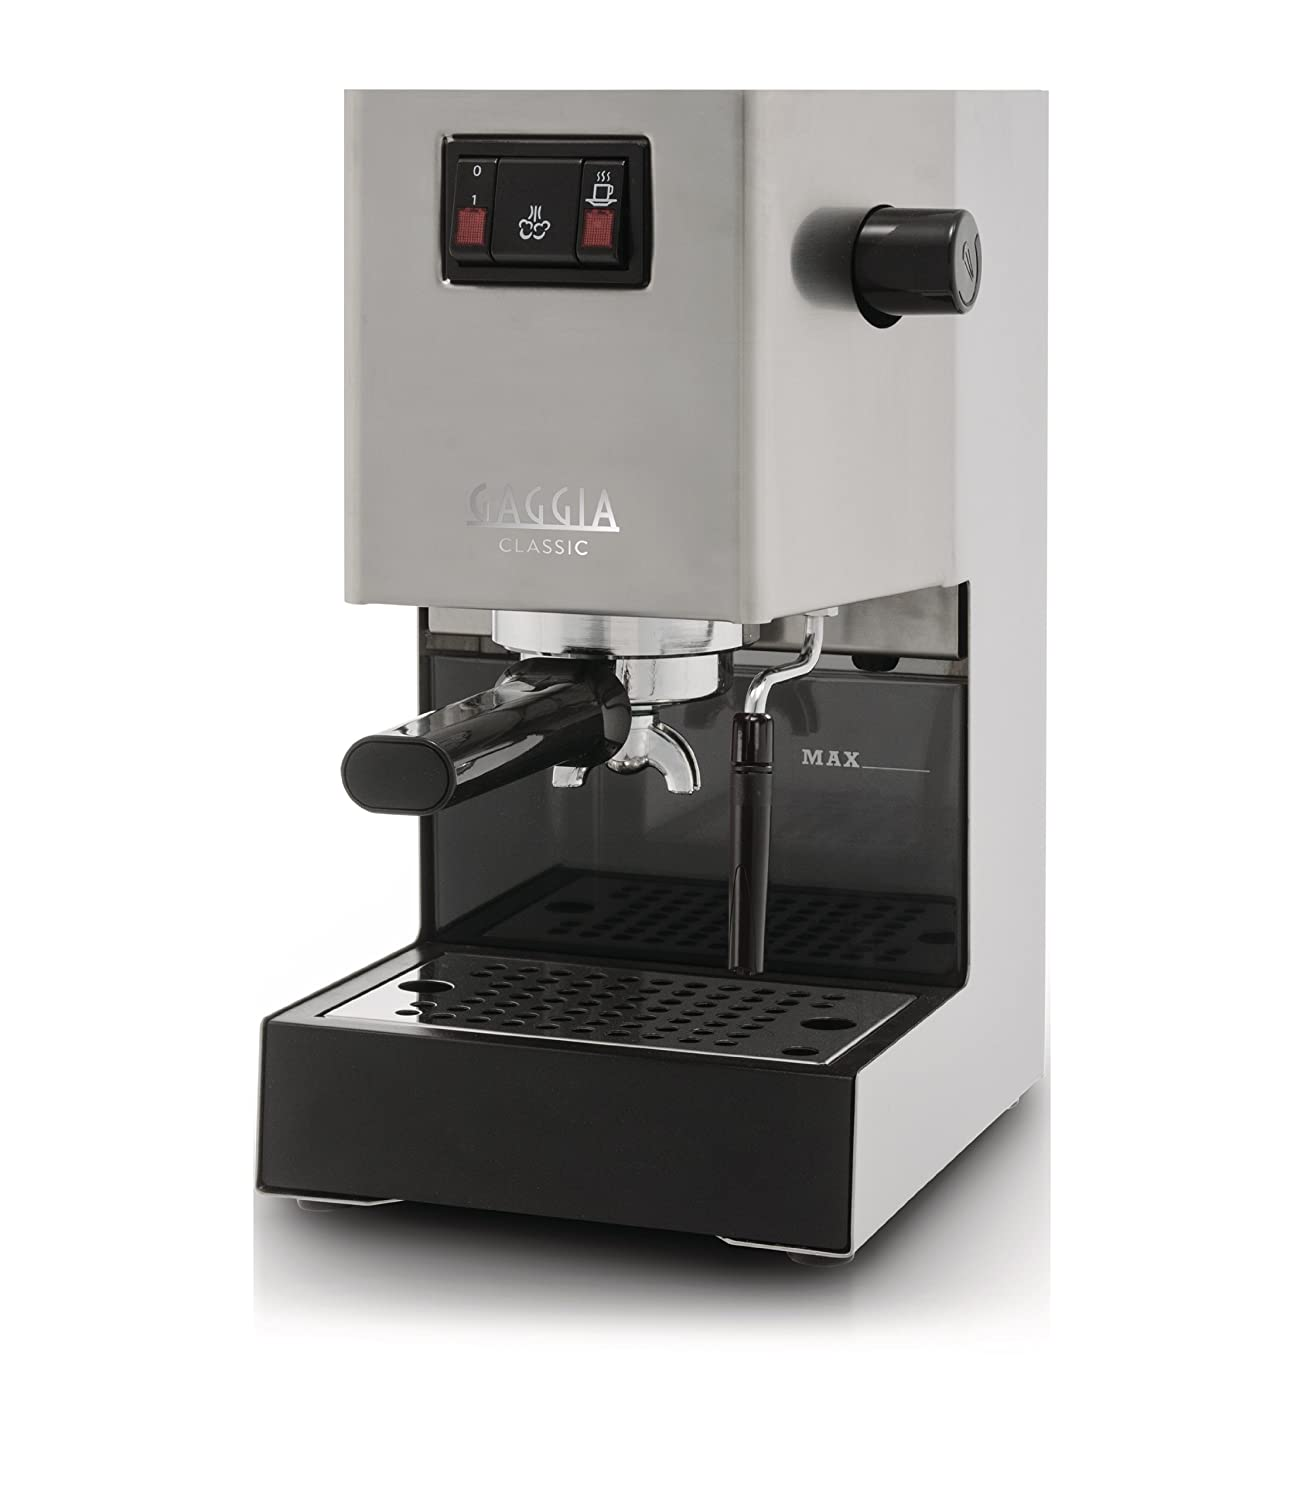 Electronic Baby Gaggia Coffee Machine gaggia classic ri8161 coffee machine with professional filter holder stainless steel body amazon co uk kitchen home